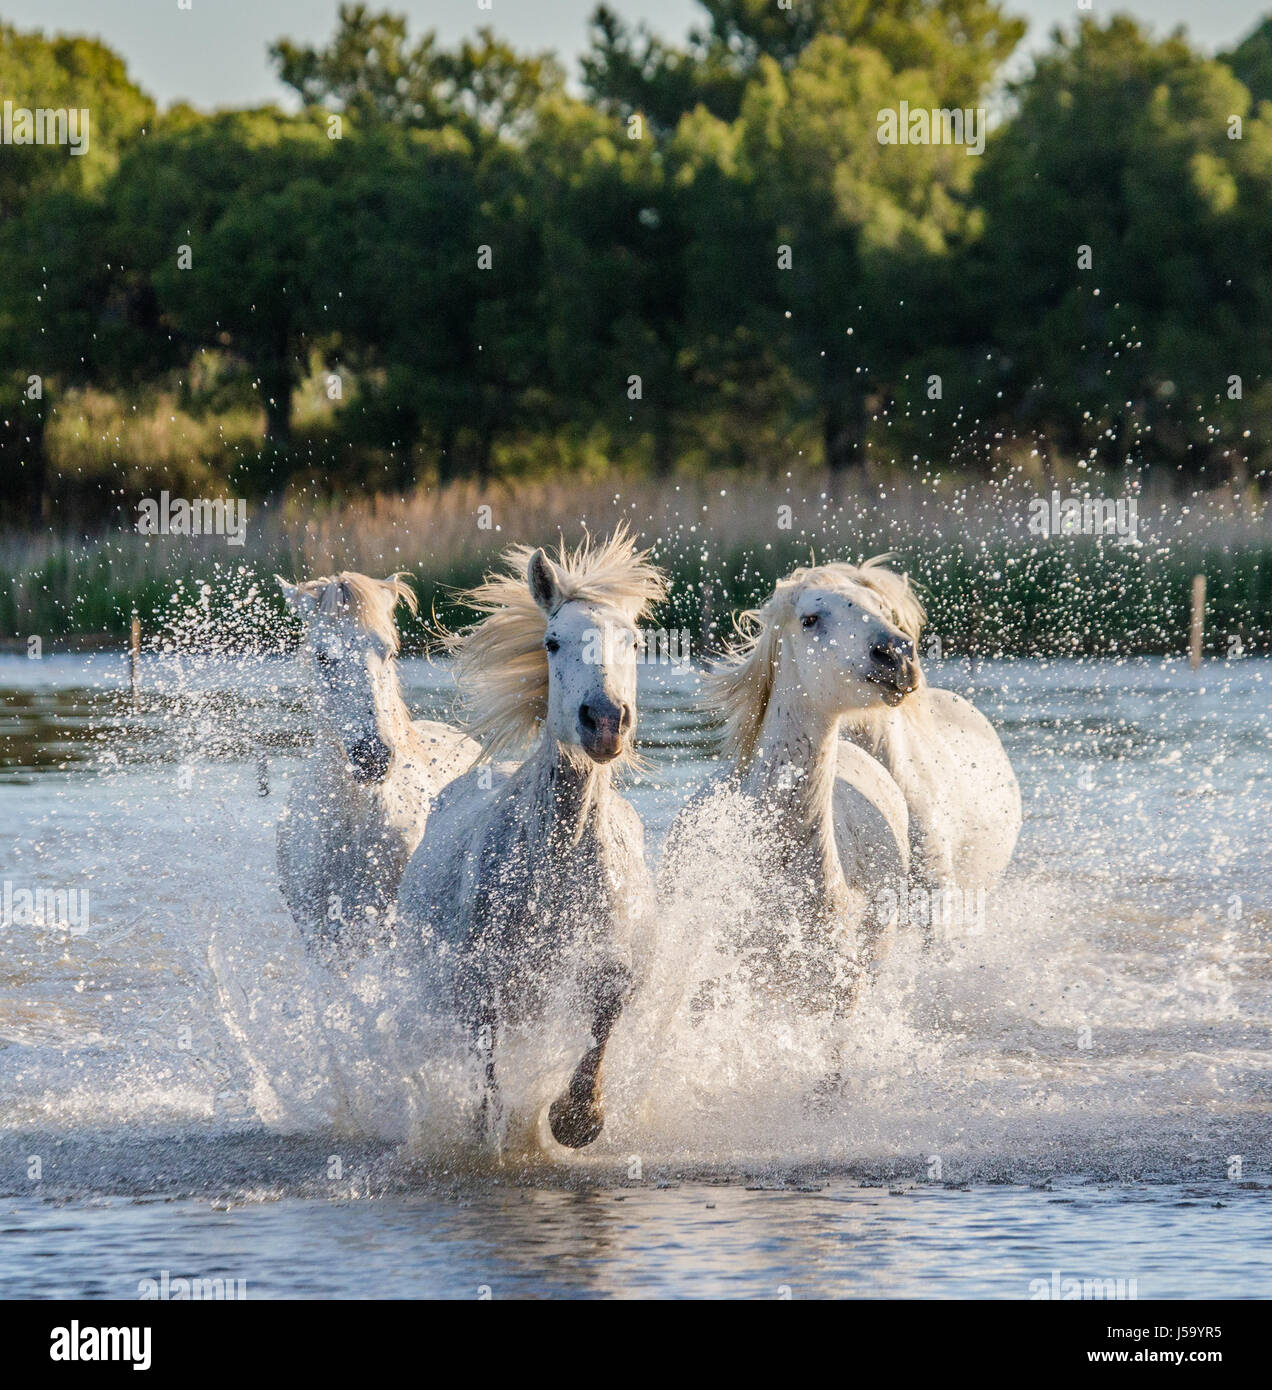 White Camargue Horses run in the swamps nature reserve. Parc Regional de Camargue. France. Provence. An excellent - Stock Image